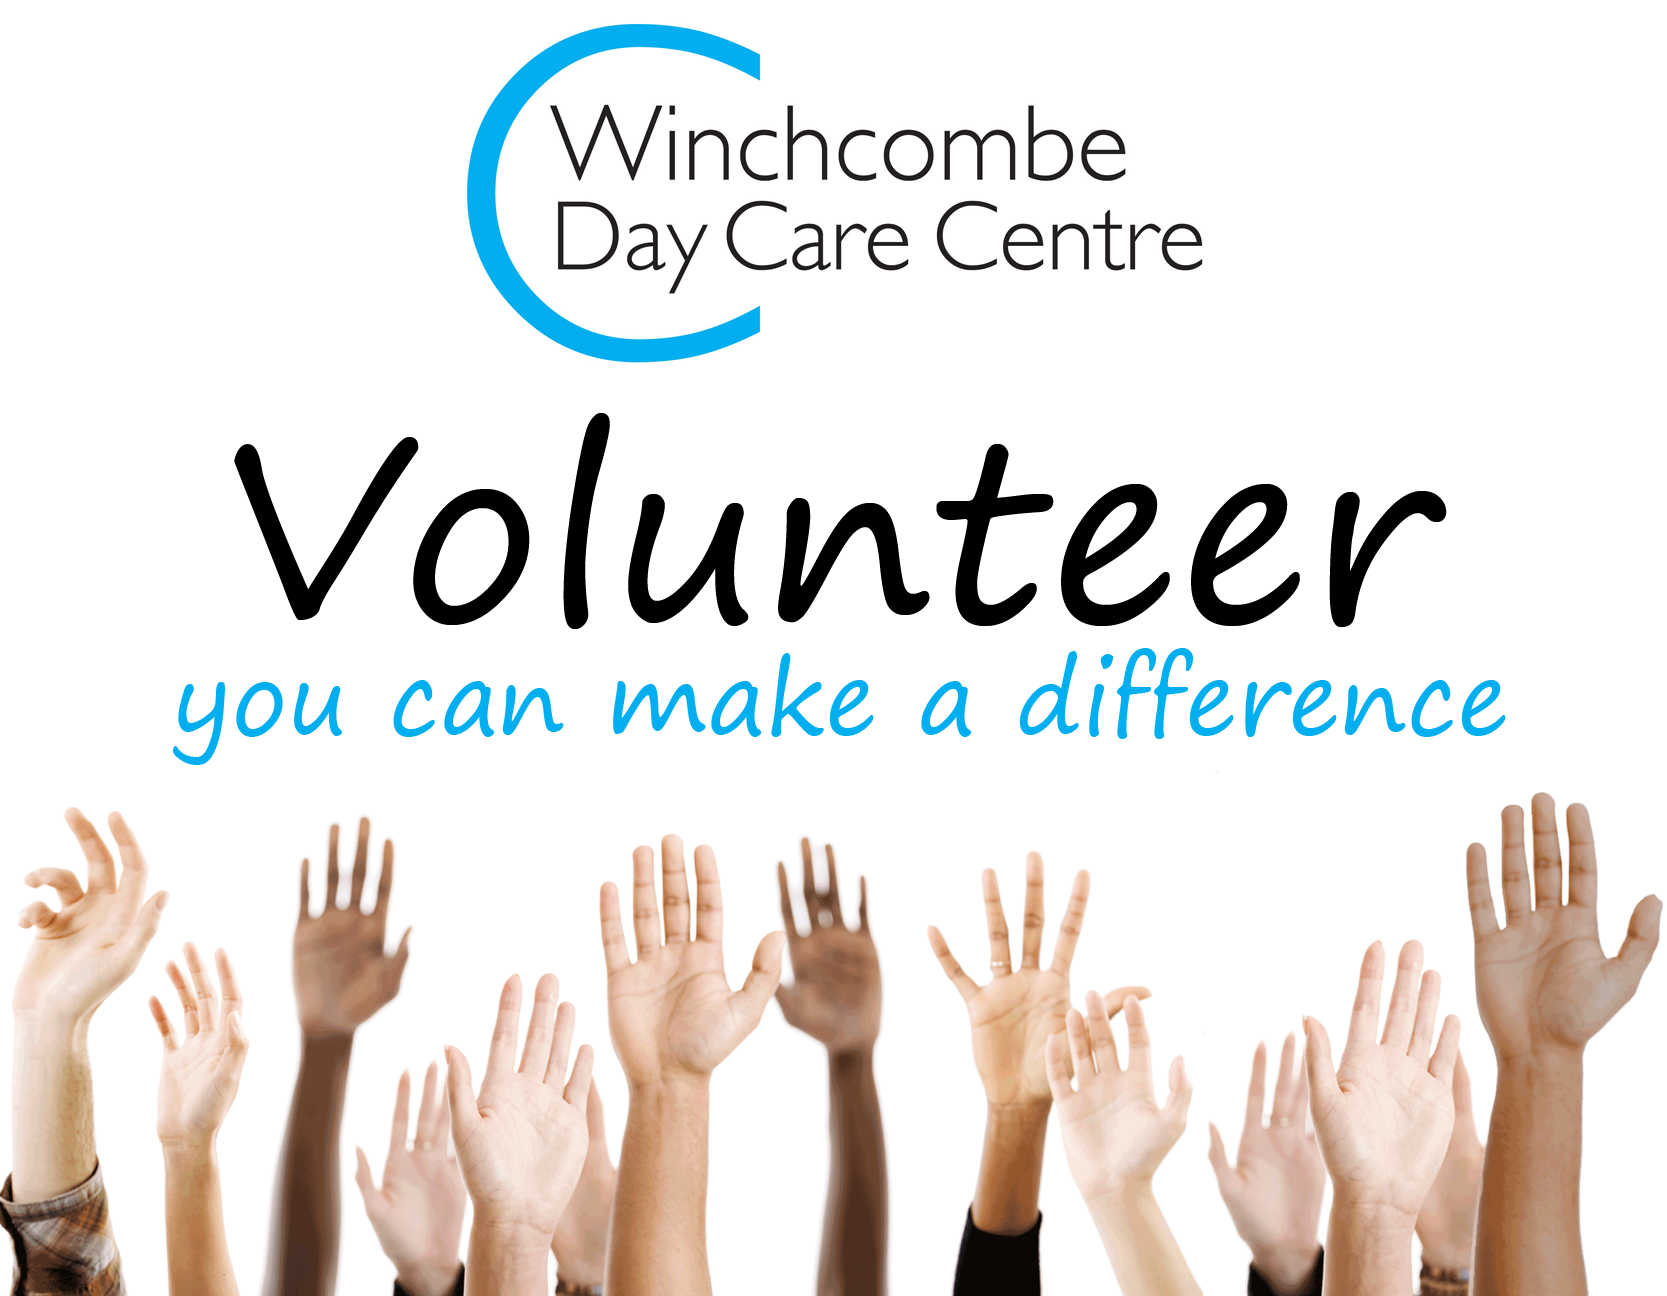 Day Care Centre Appeal for Vounteers